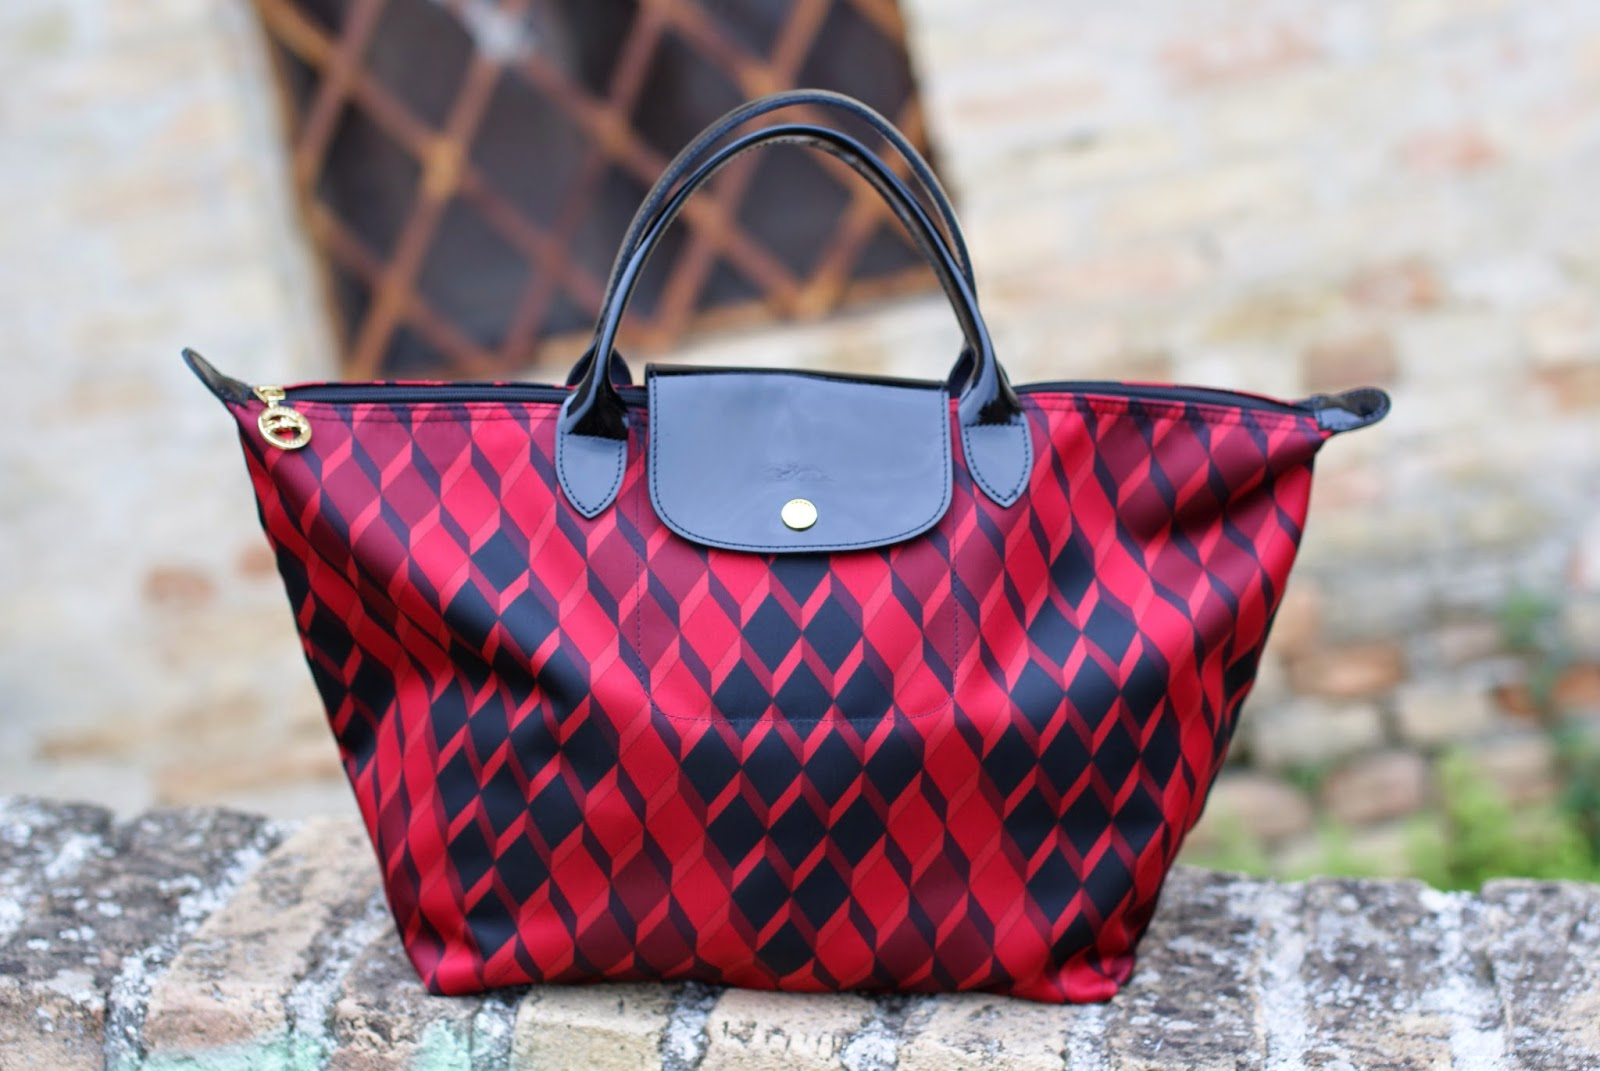 Longchamp Le Pliage bag 2014, Le Pilage handbag, Long Champ handbag,  Fashion and Cookies, fashion blogger